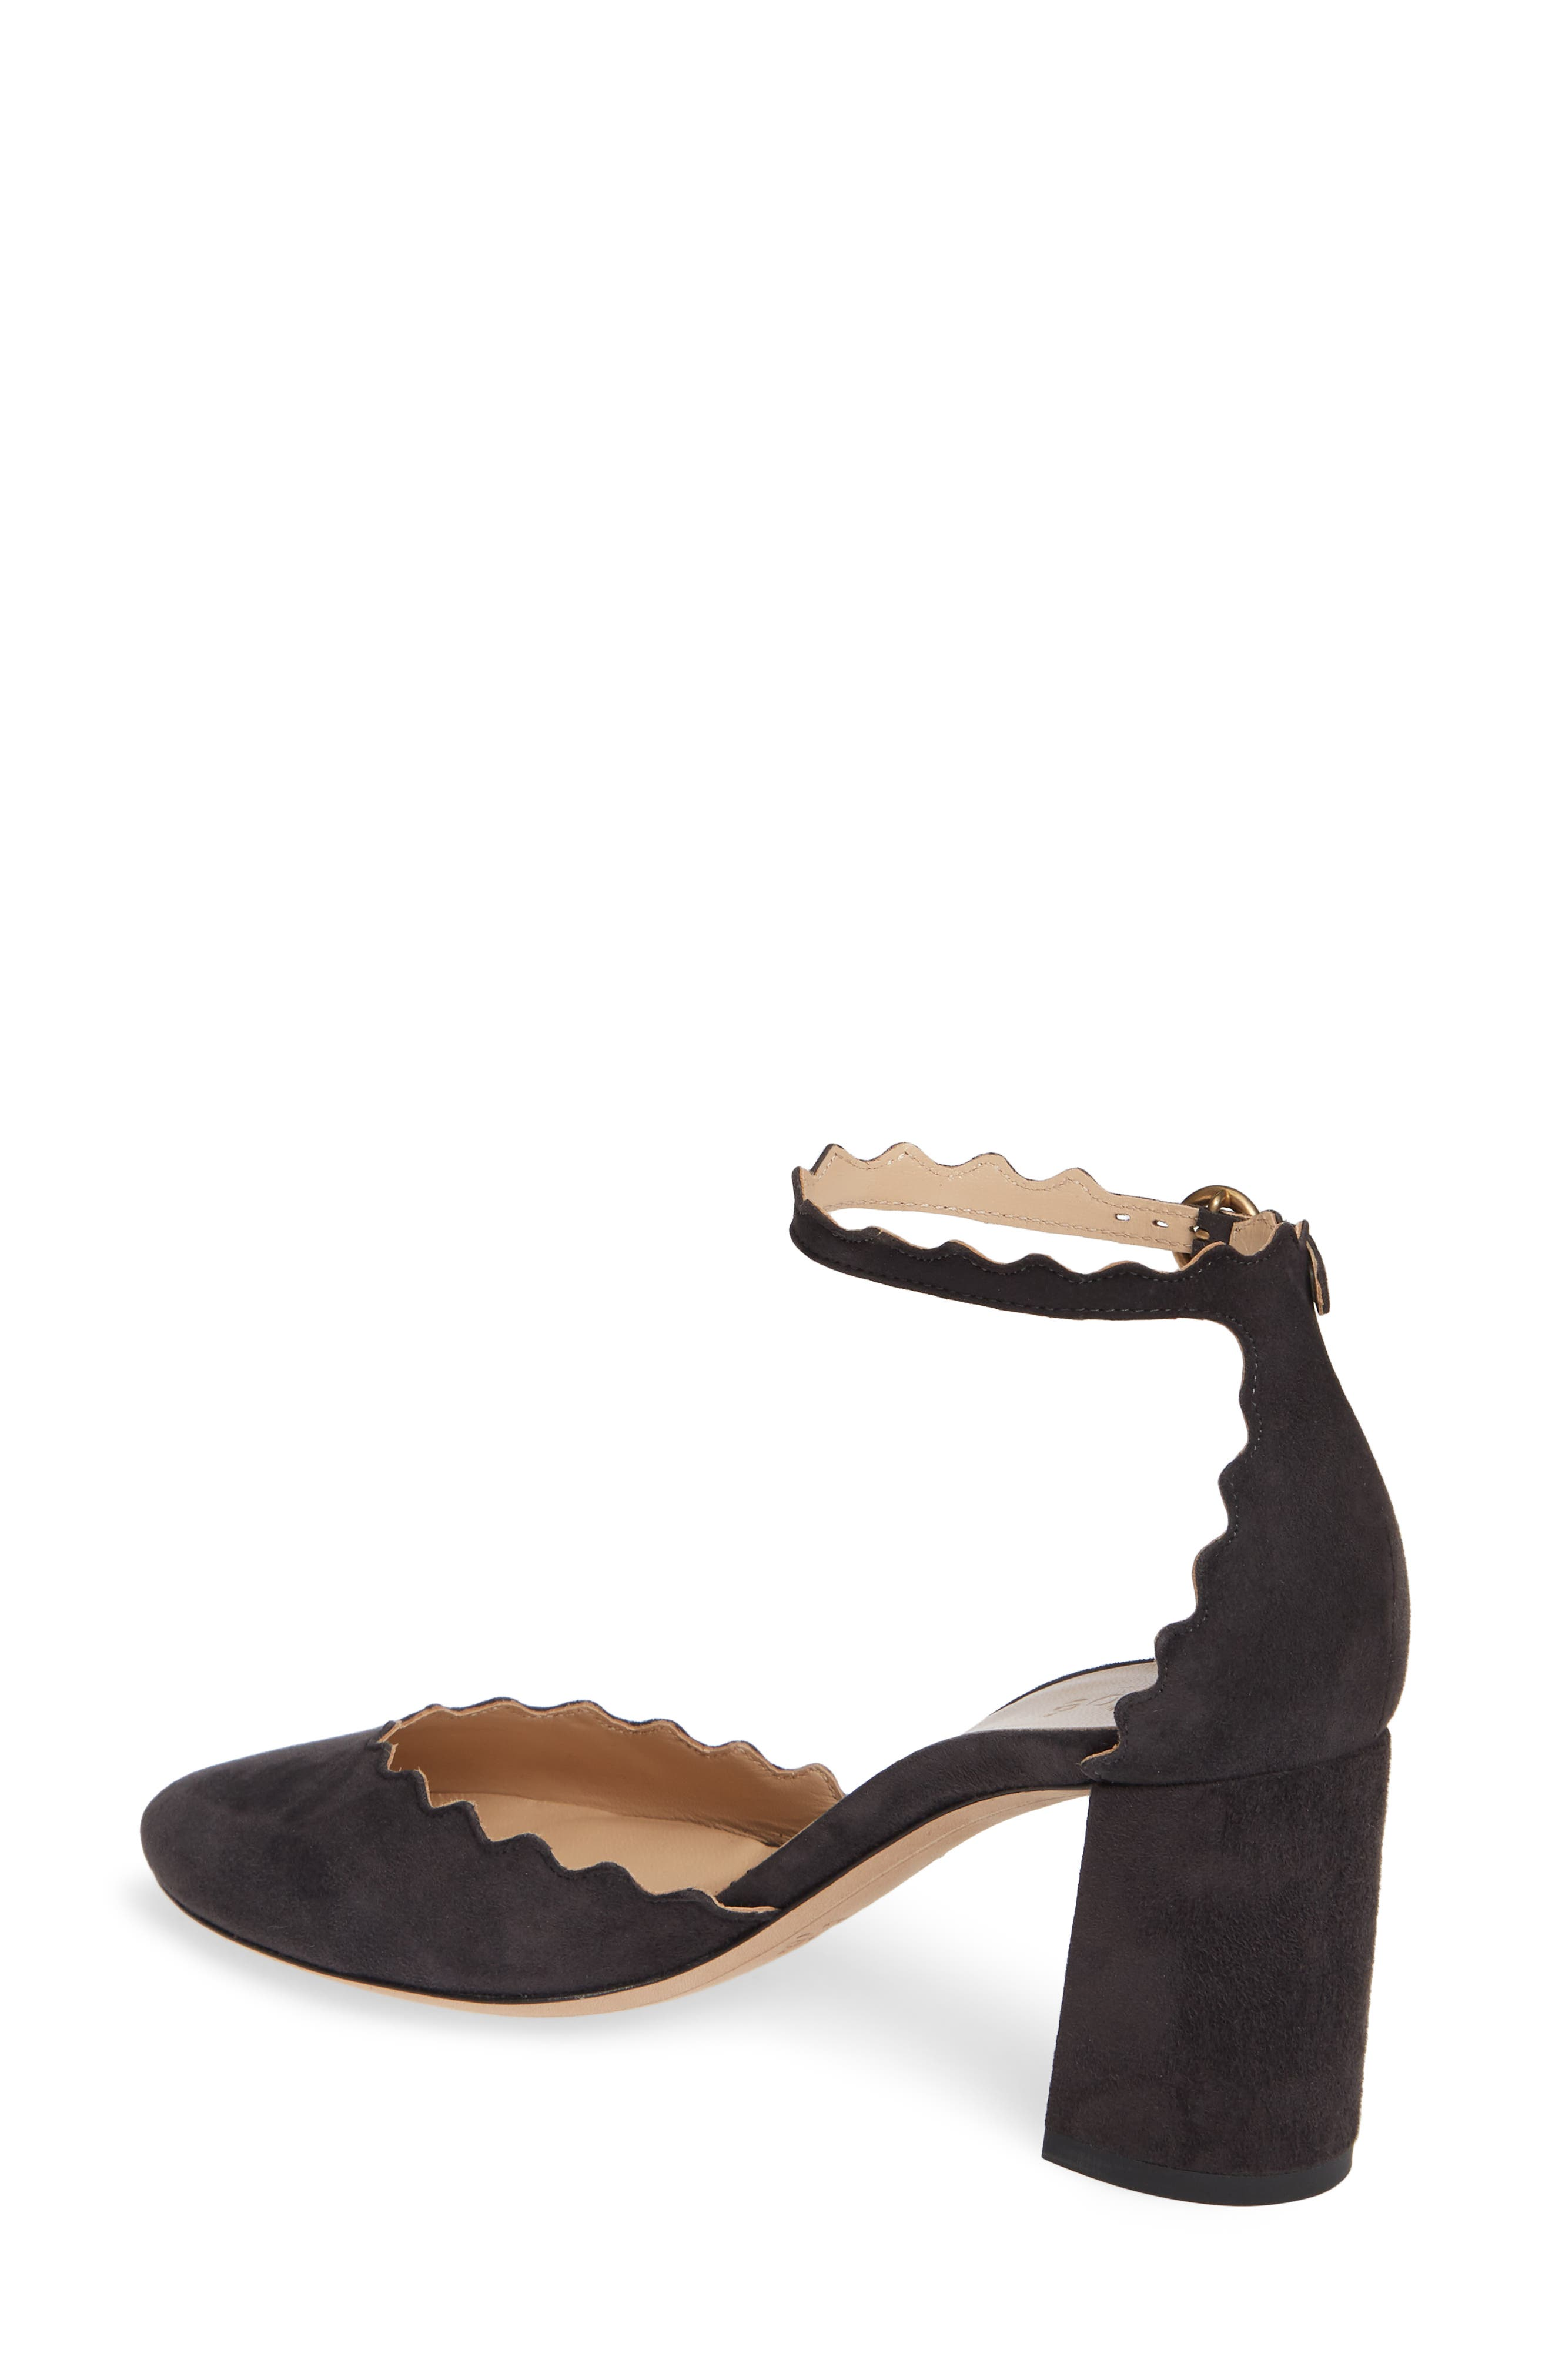 Scalloped Ankle Strap d'Orsay Pump,                             Alternate thumbnail 2, color,                             CHARCOAL BLACK